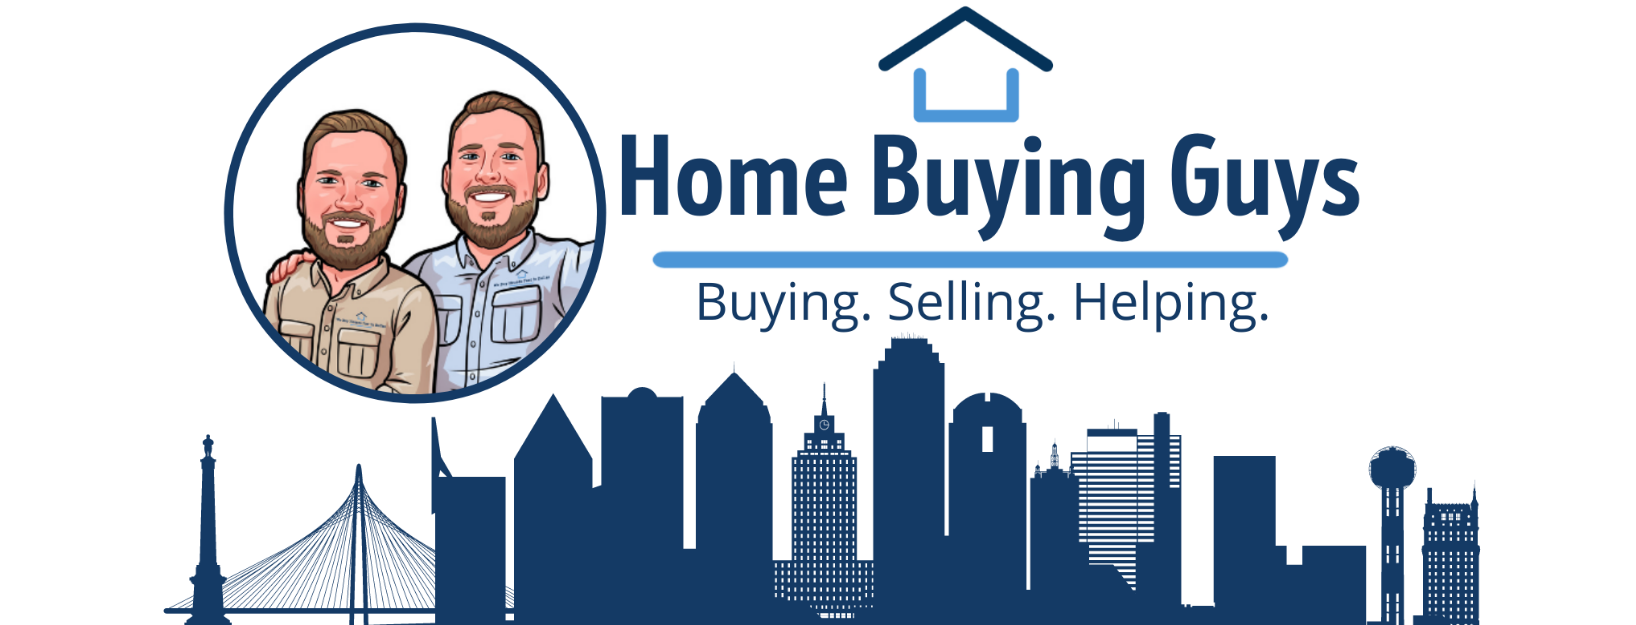 We Buy Houses Fast in Dallas Fort Worth logo